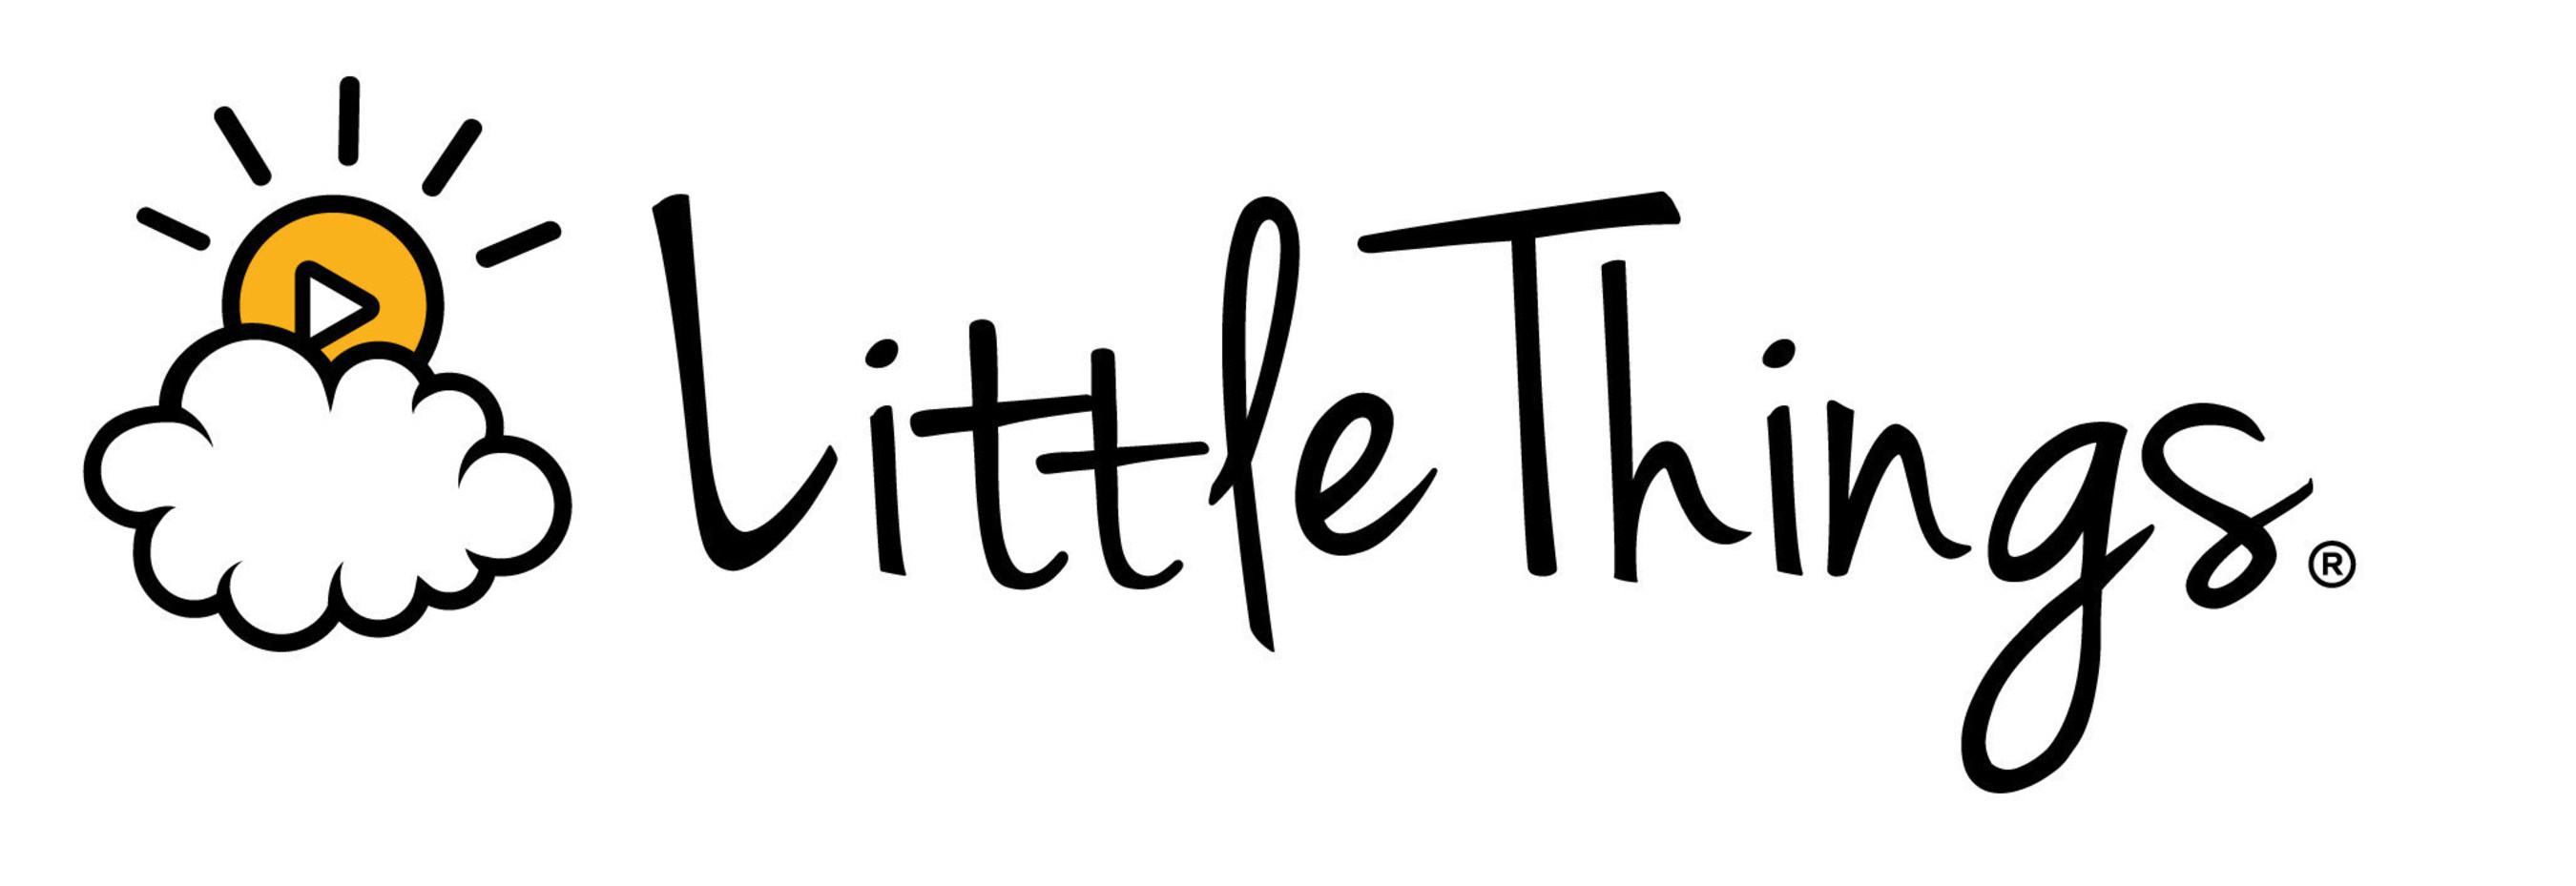 LittleThings, the leading lifestyle destination for inspiring, uplifting, and engaging content, has appointed MSLGROUP as its public relations agency of record in the U.S.